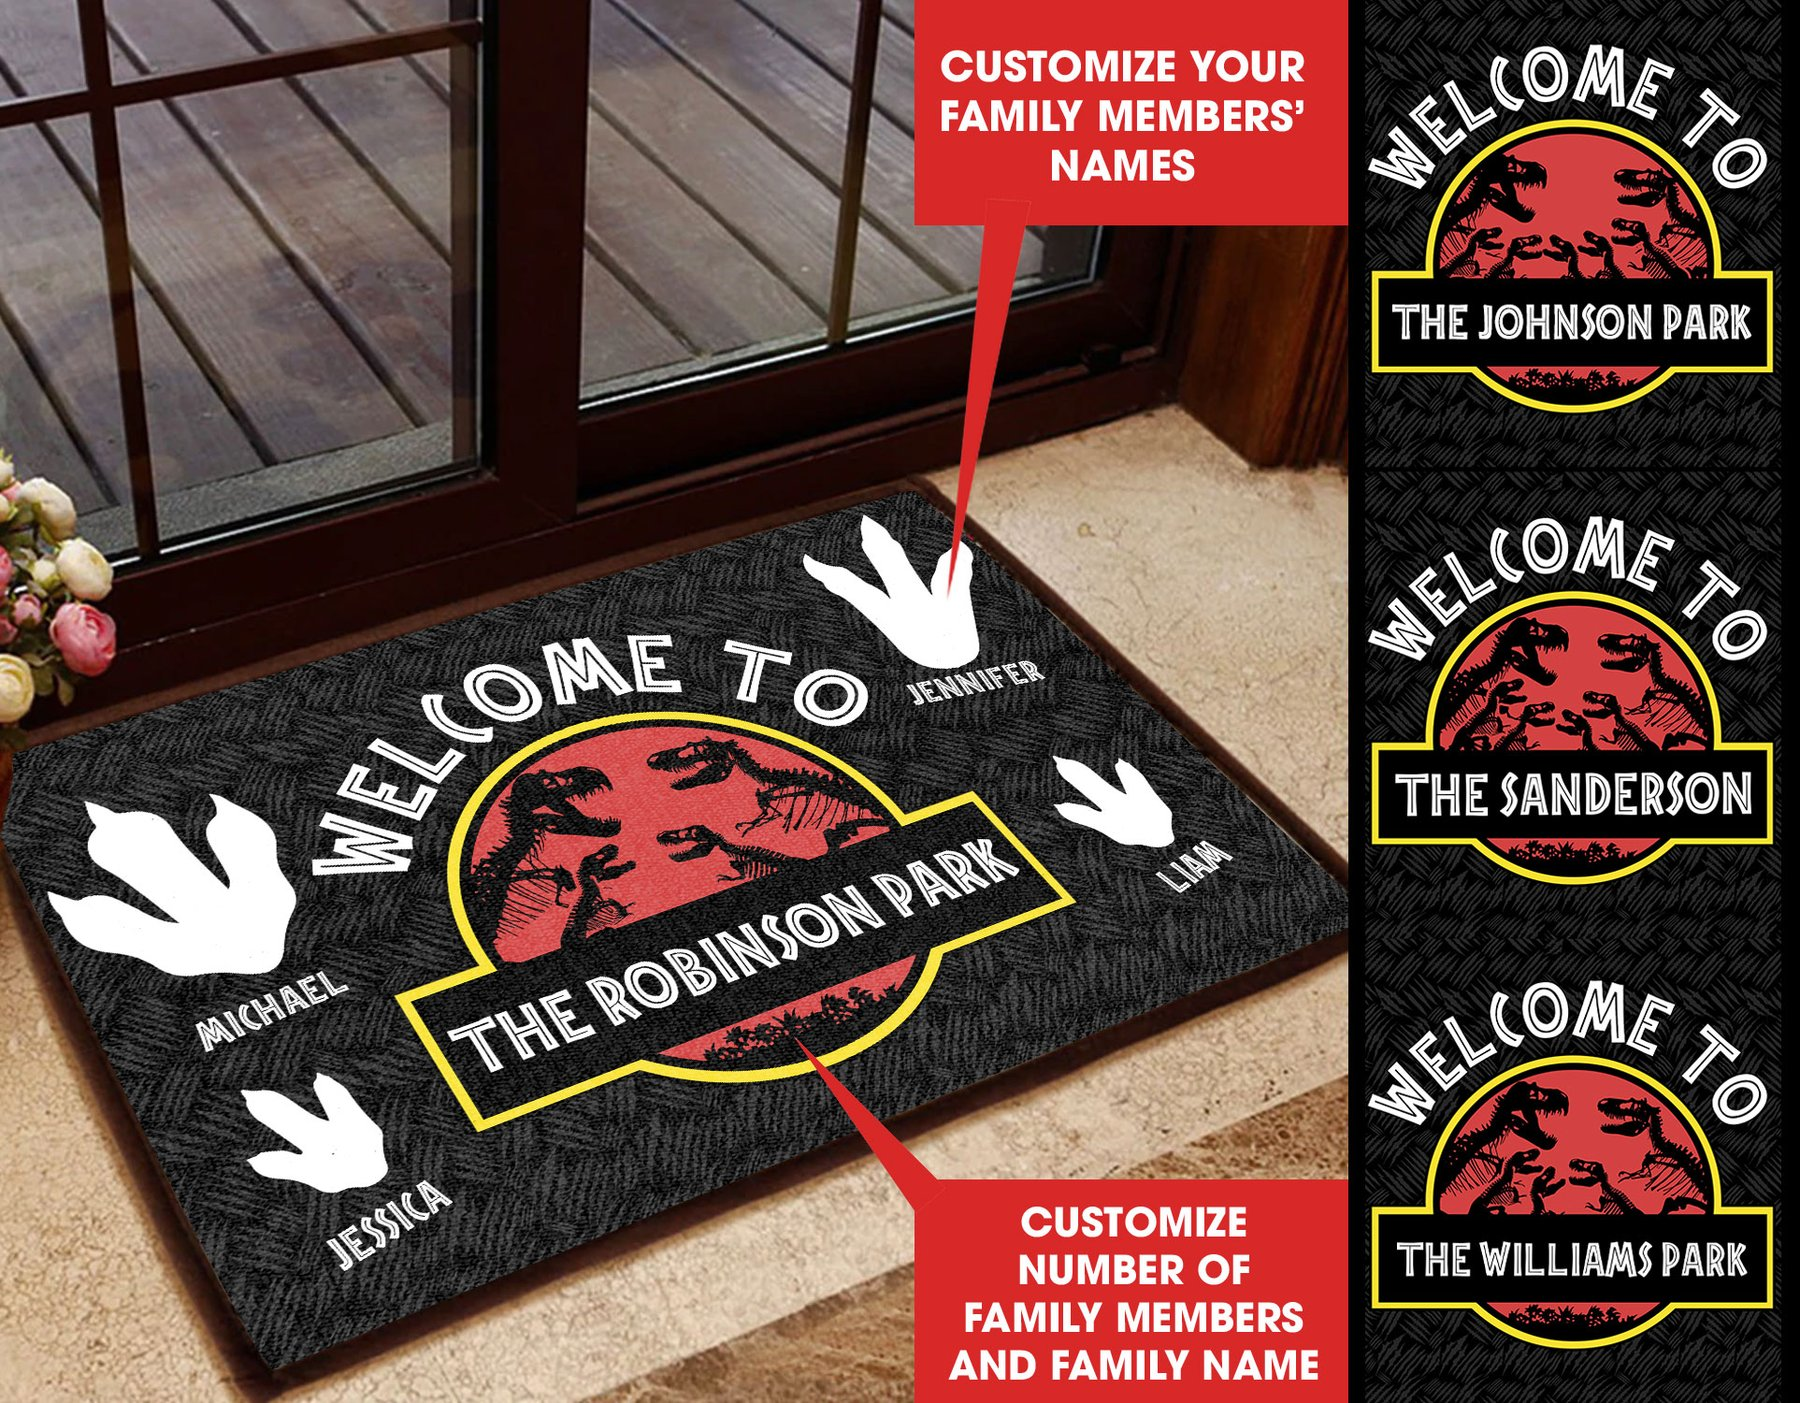 Welcome to Jurassic Part Personalized custom doormat